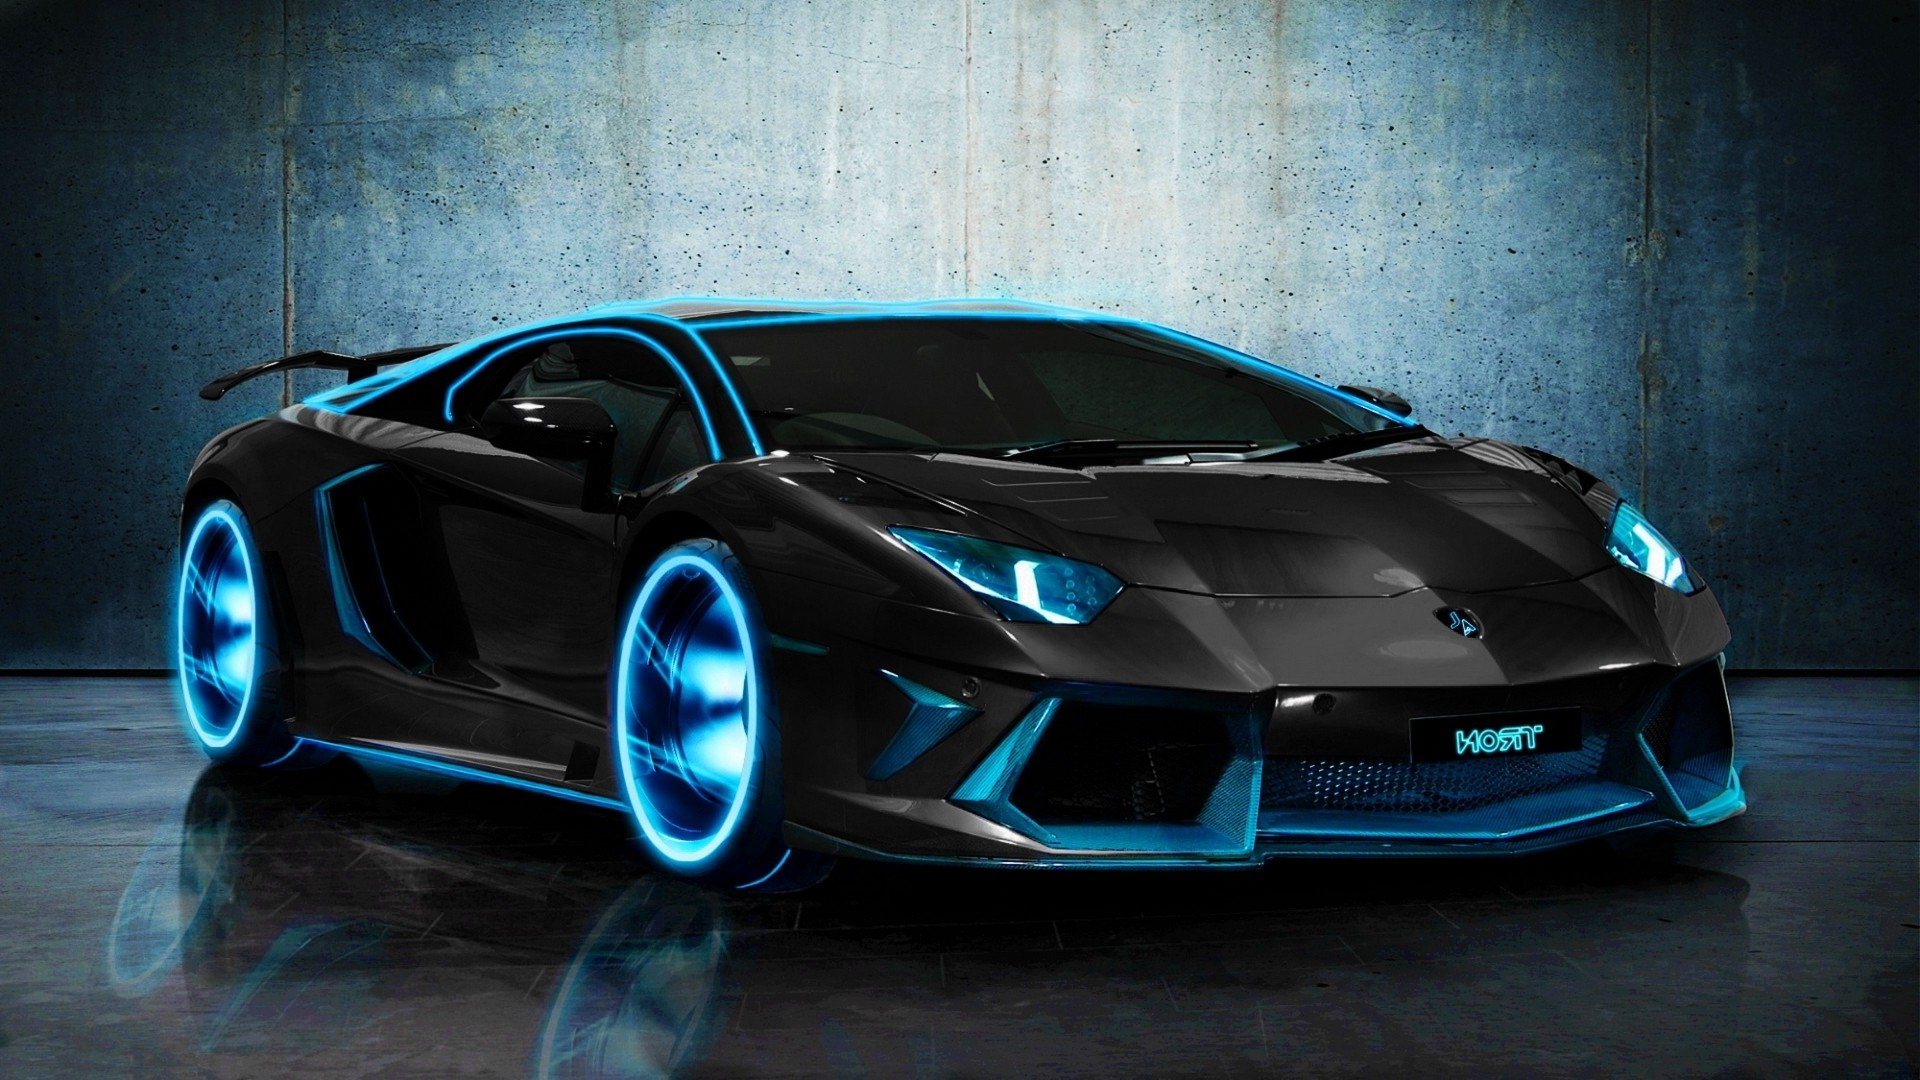 Lamborghini car wallpapers Check out these 10 amazing hd wallpapers 1920x1080